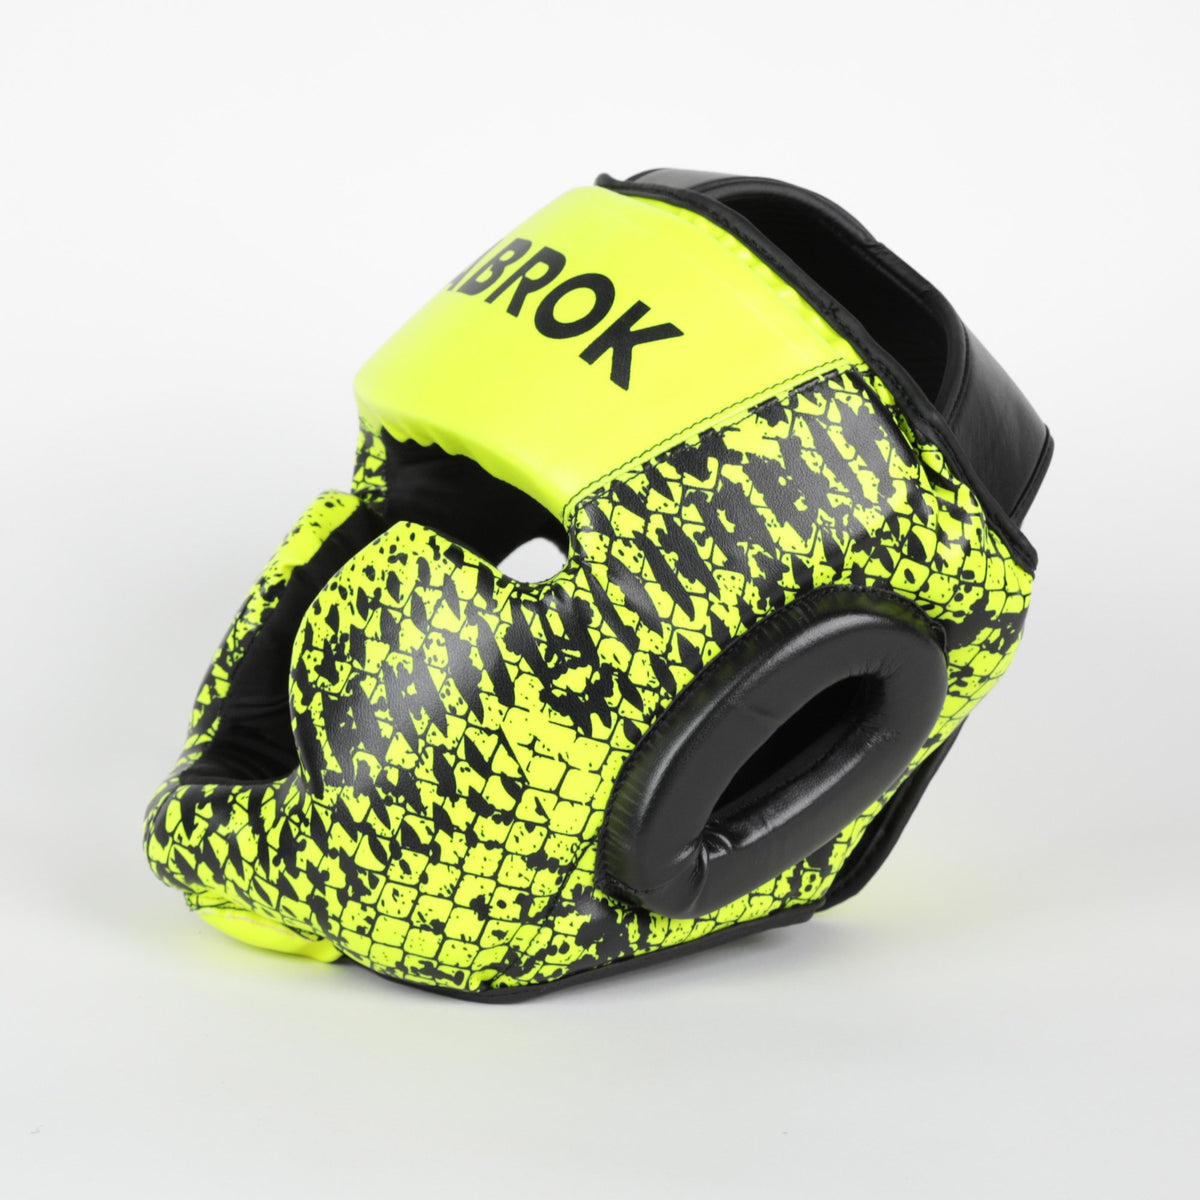 Habrok head guard YELLOW X1 | Kids |  Head Guard | Yellow | Habrok | MMA | Boxing | Muay Thai